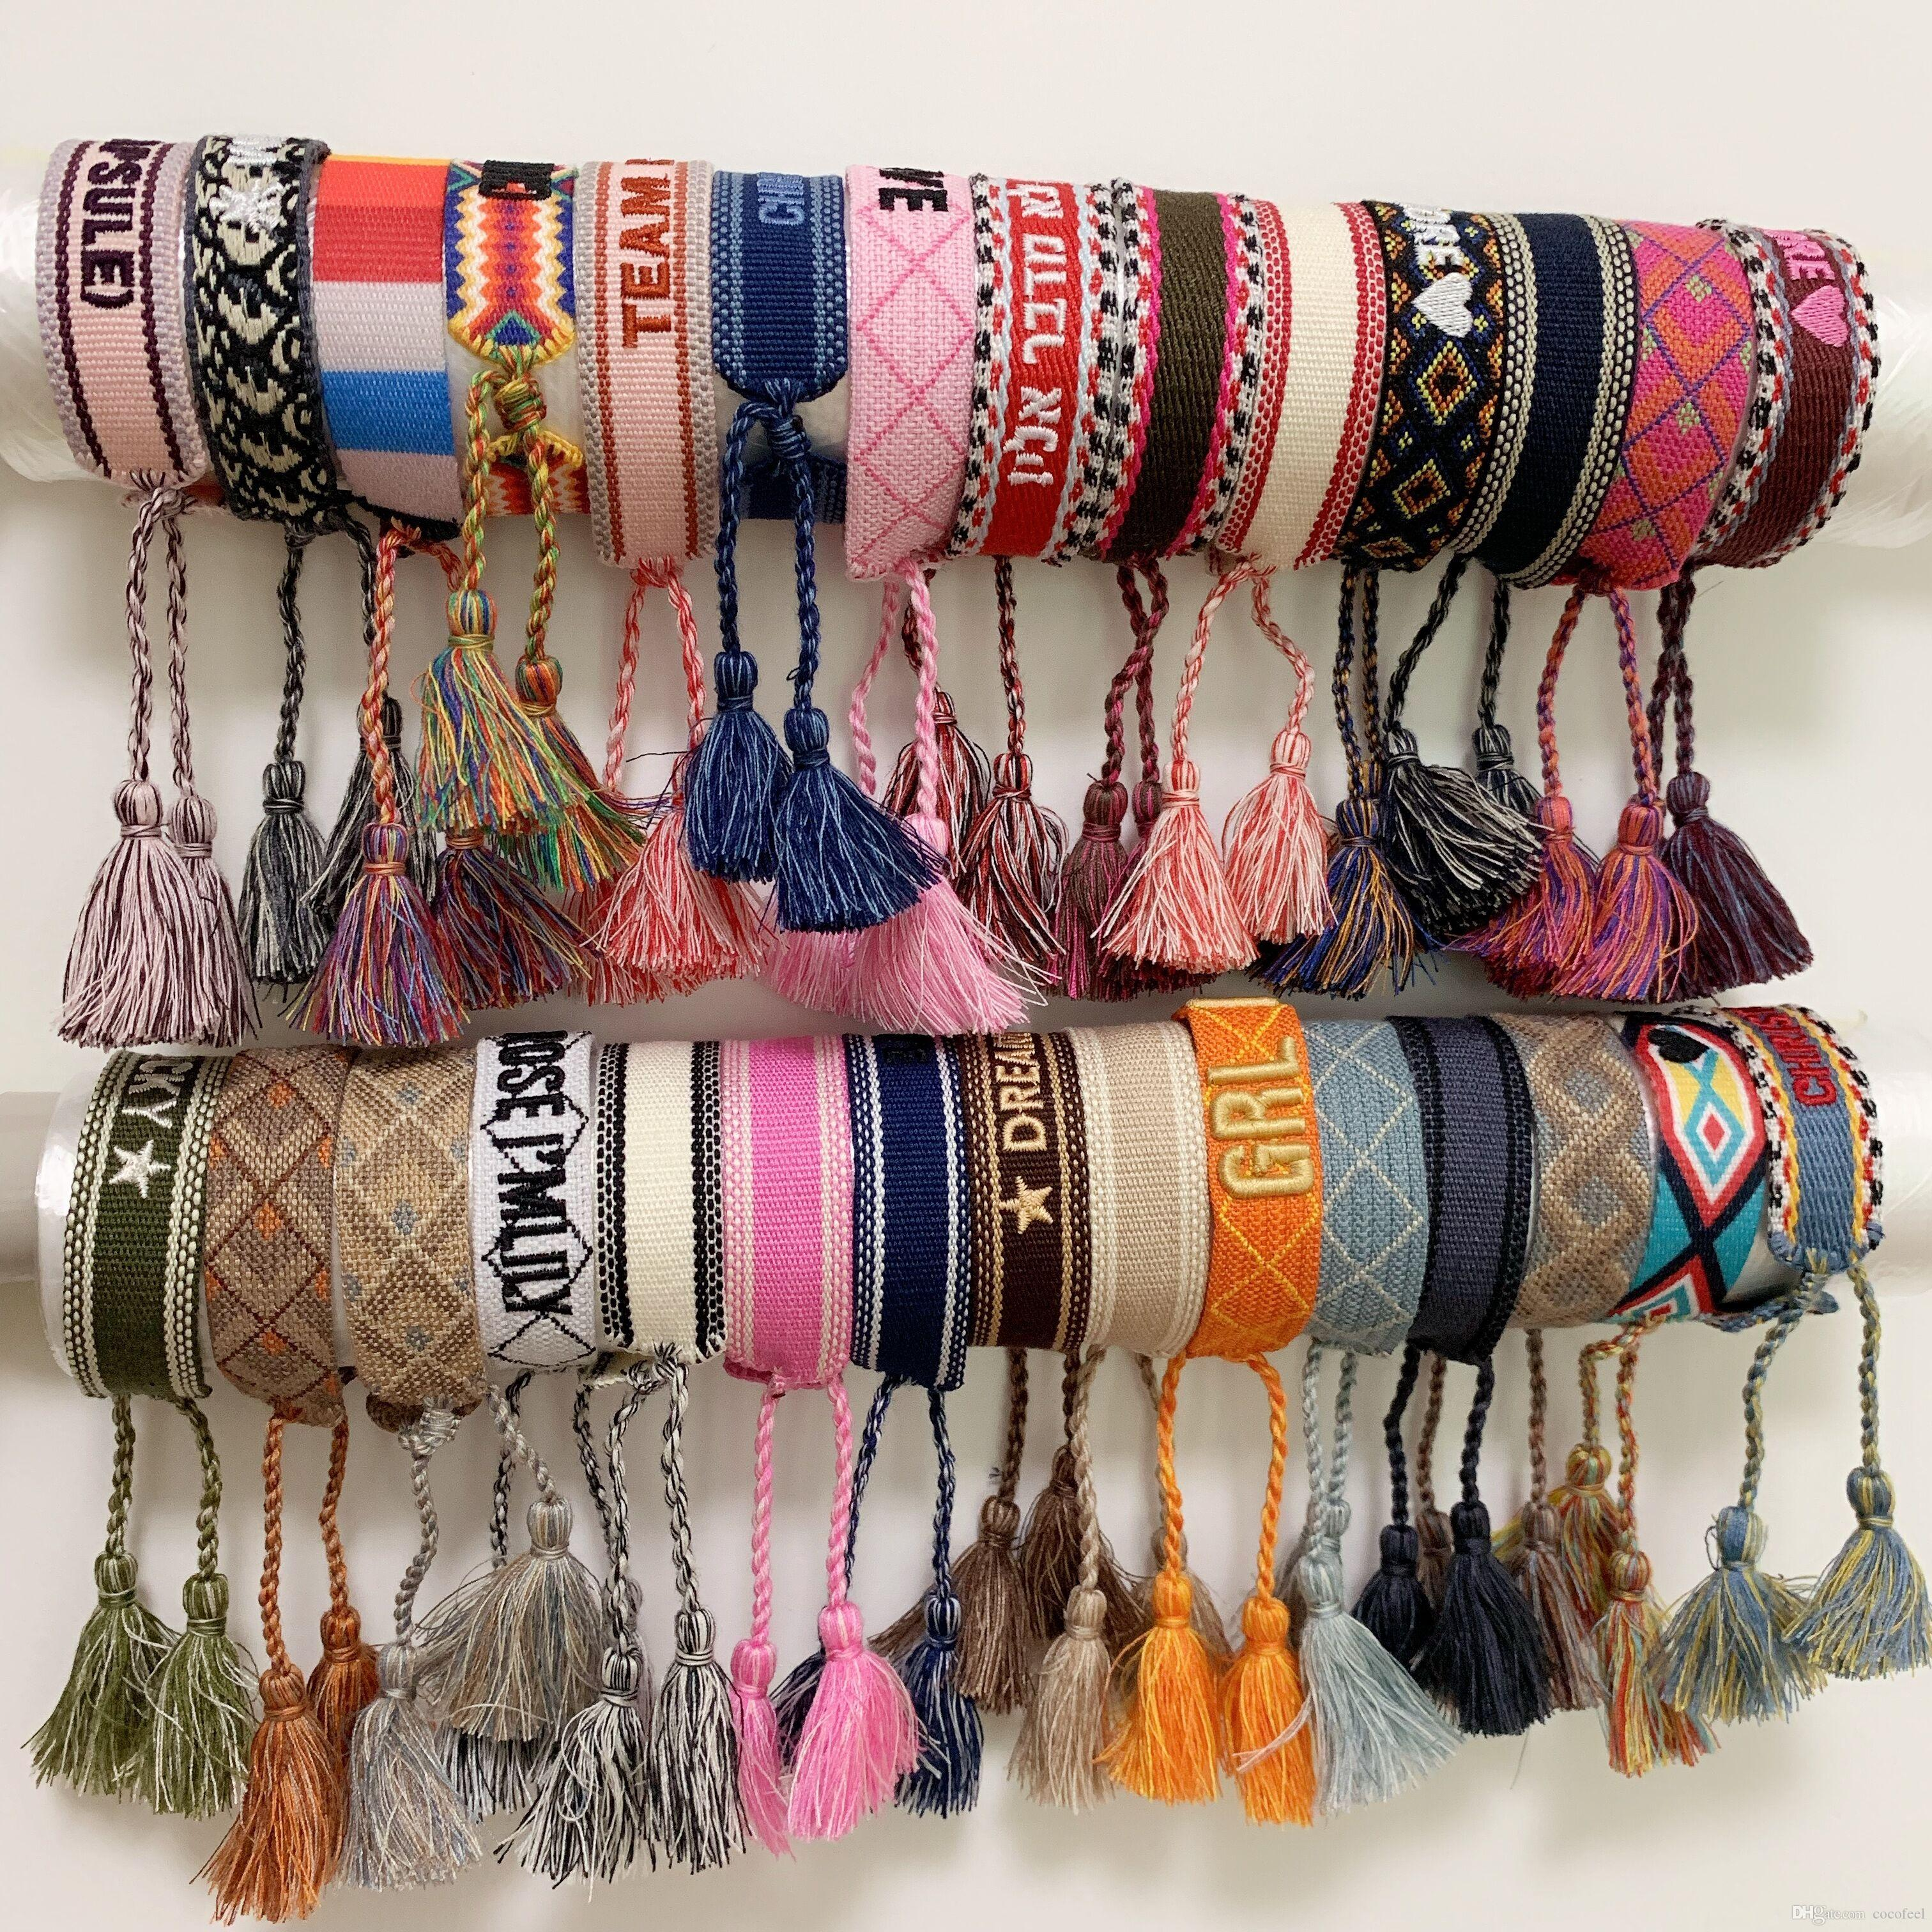 Luxury style rope material woven bracelet with sewing words and tassel hand strap brand jewelry for women gift